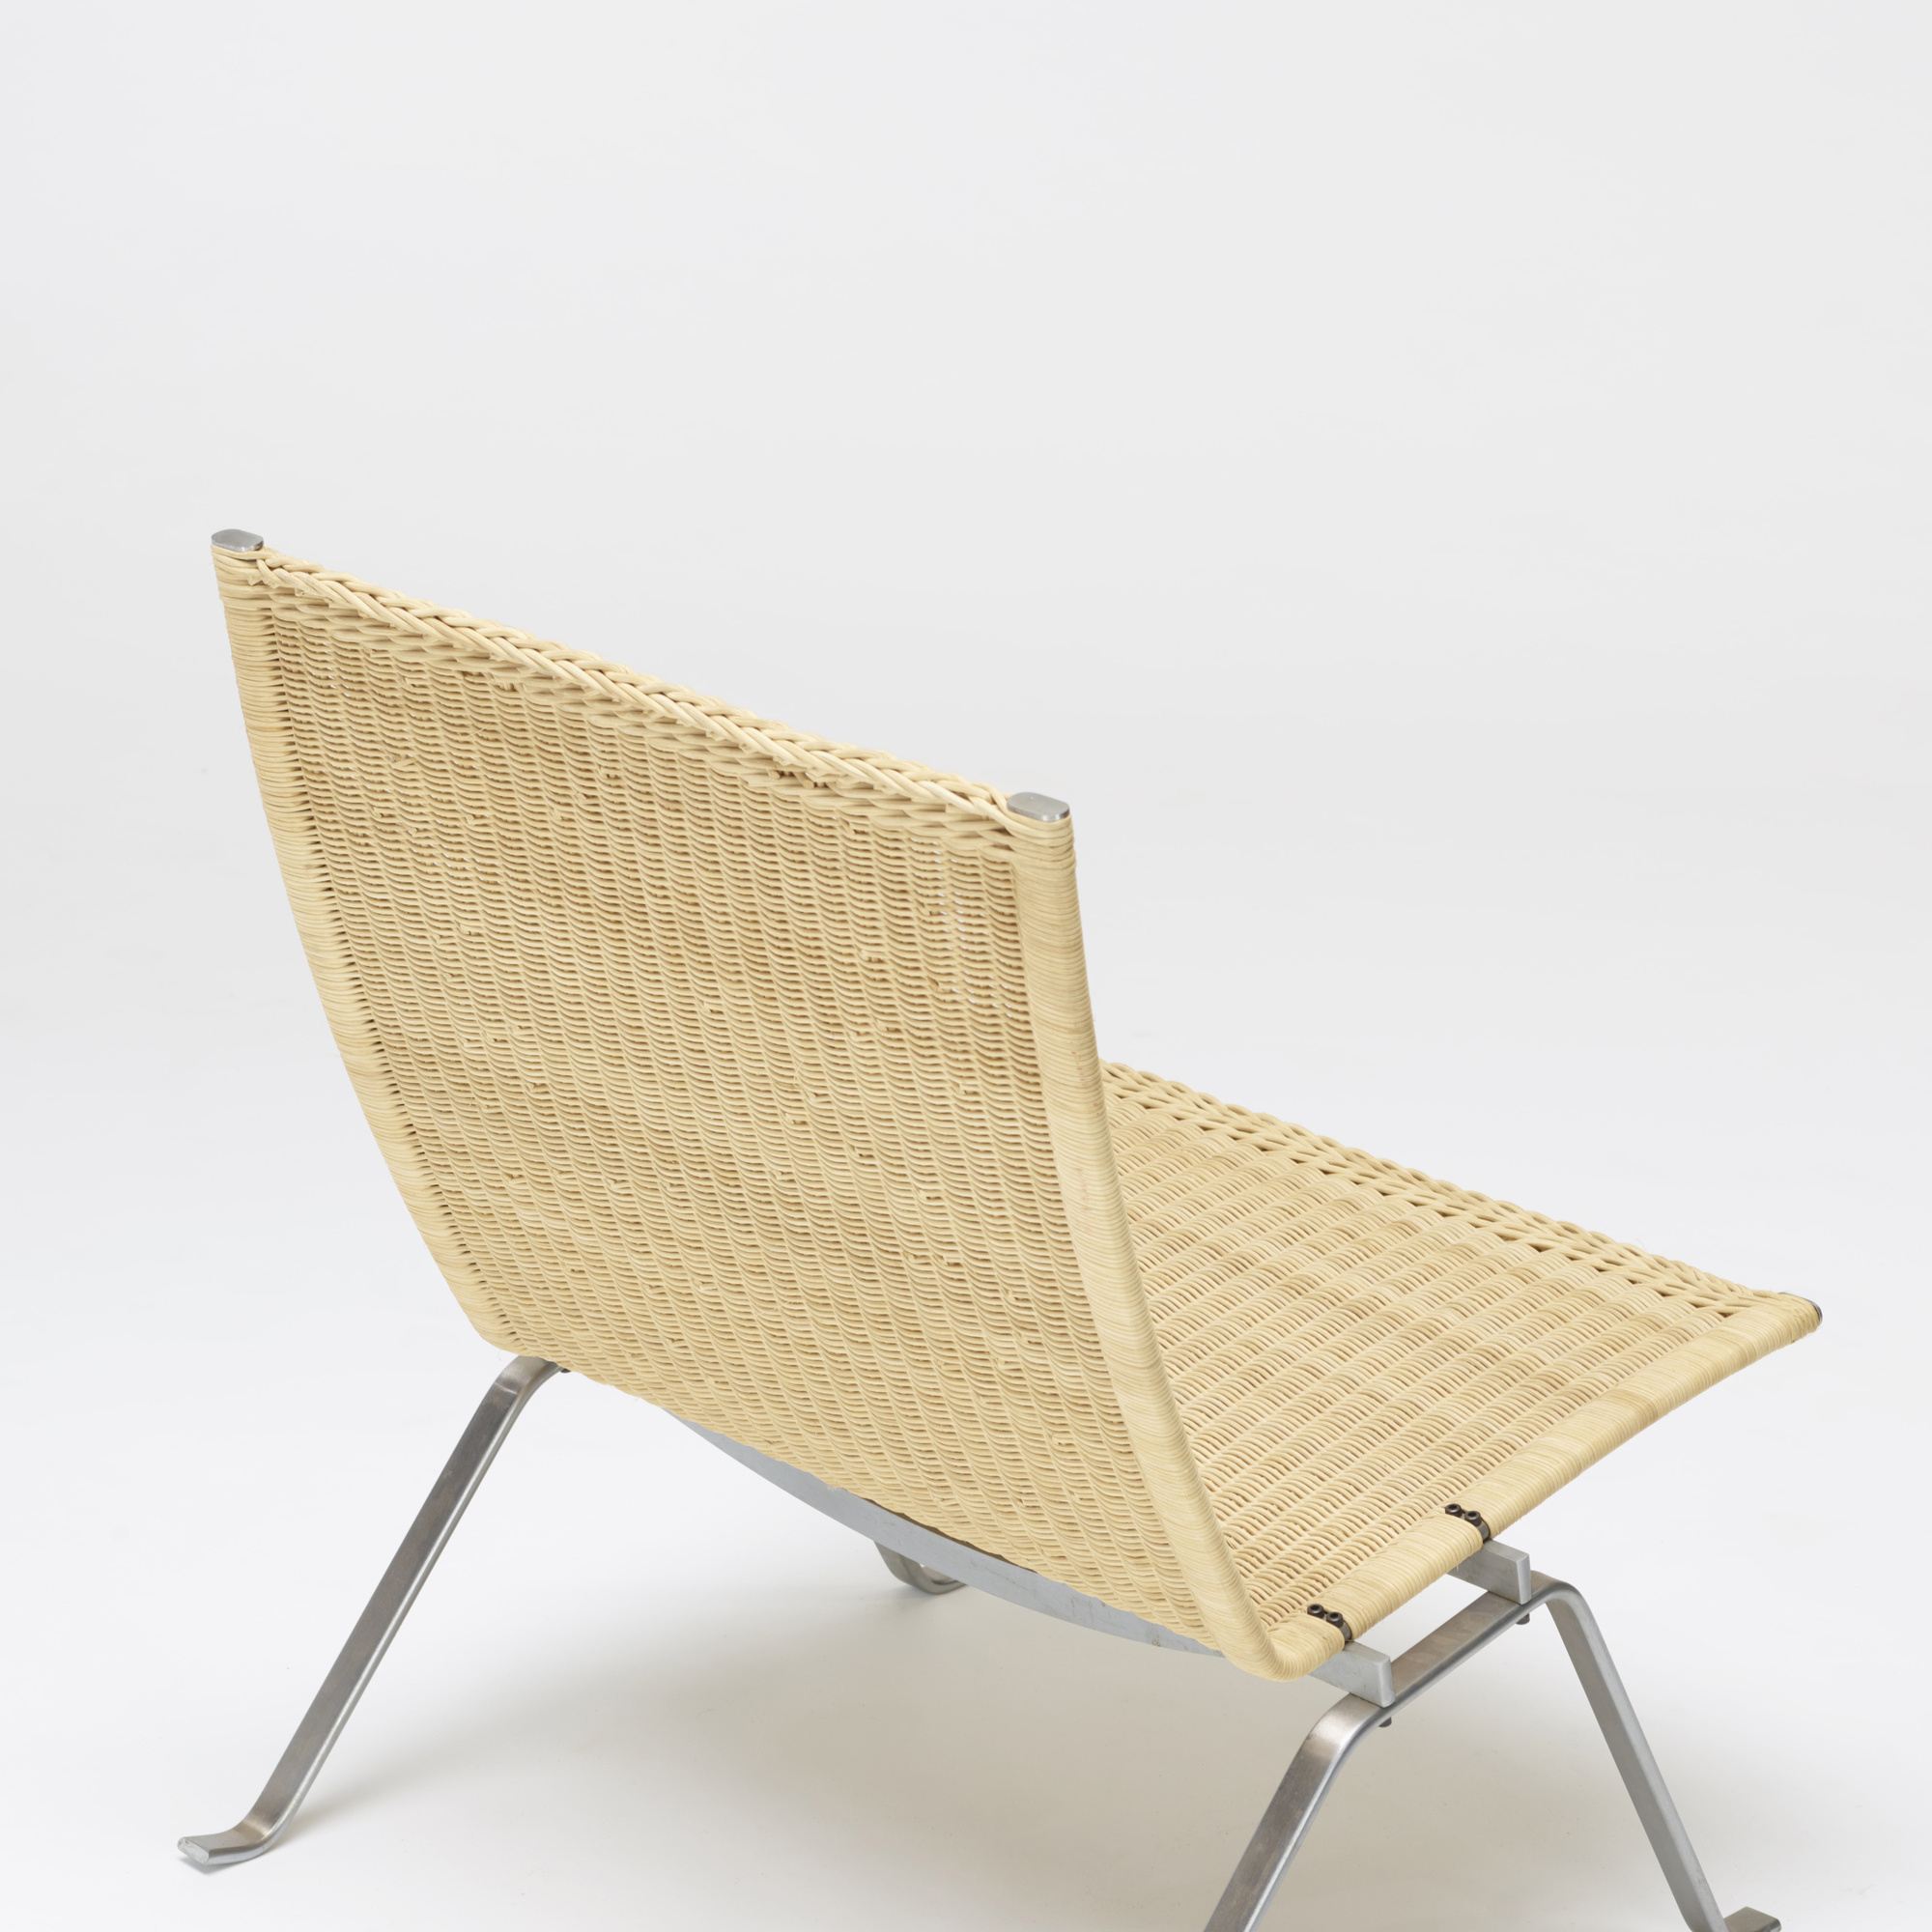 388: Poul Kjaerholm / PK 22 chair and additional chair components (3 of 3)